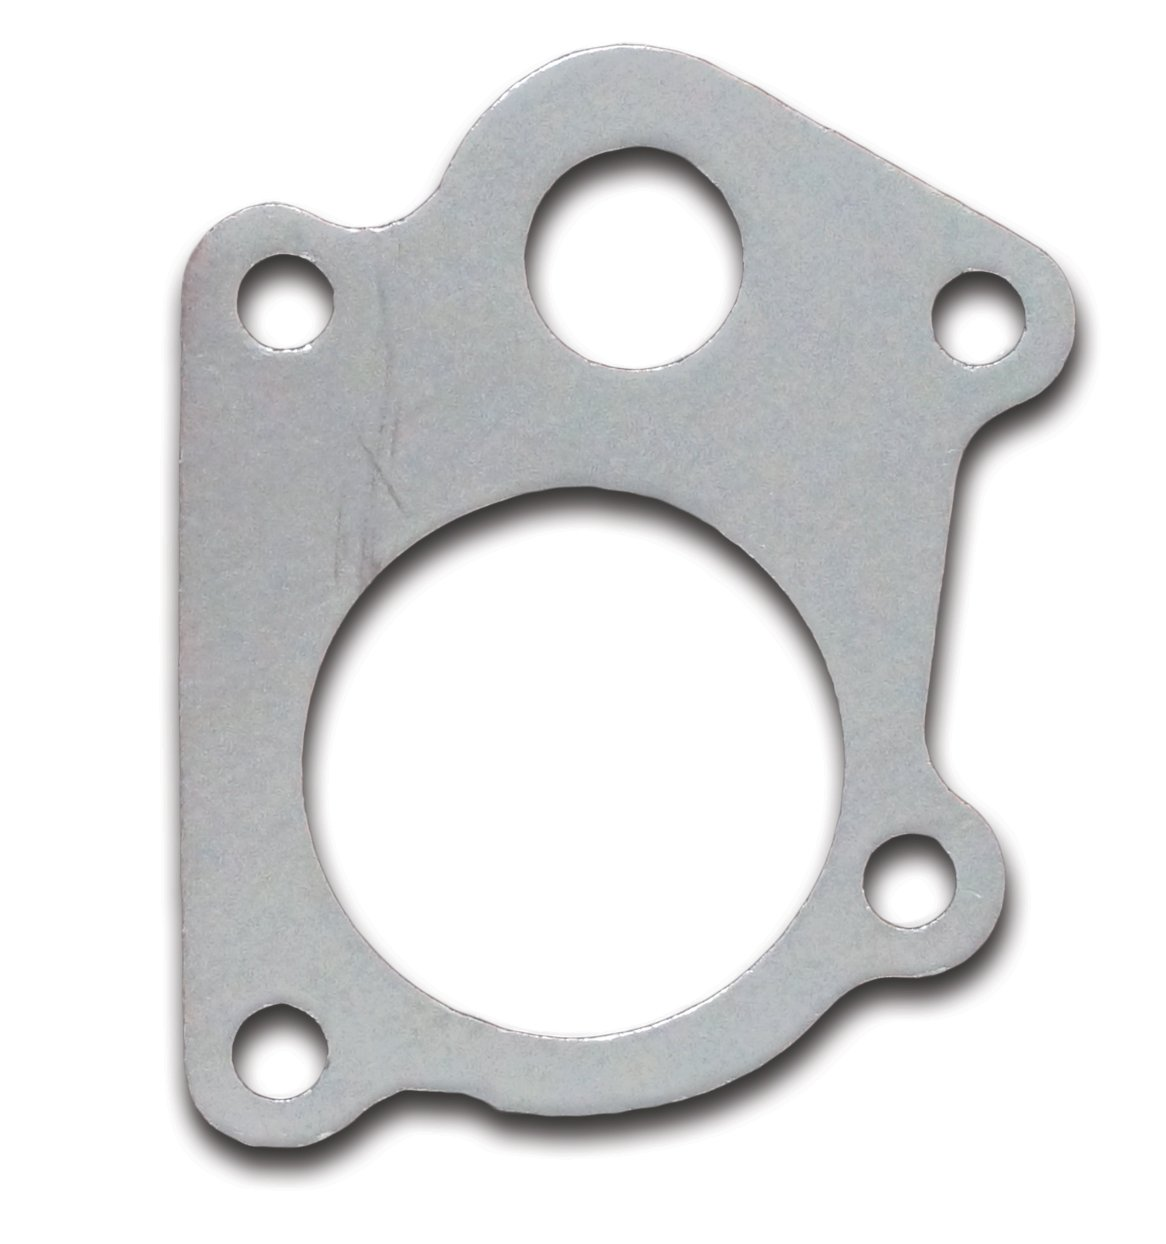 Remflex 13-011 Turbo-to-Down Pipe Exhaust Gasket for Buick